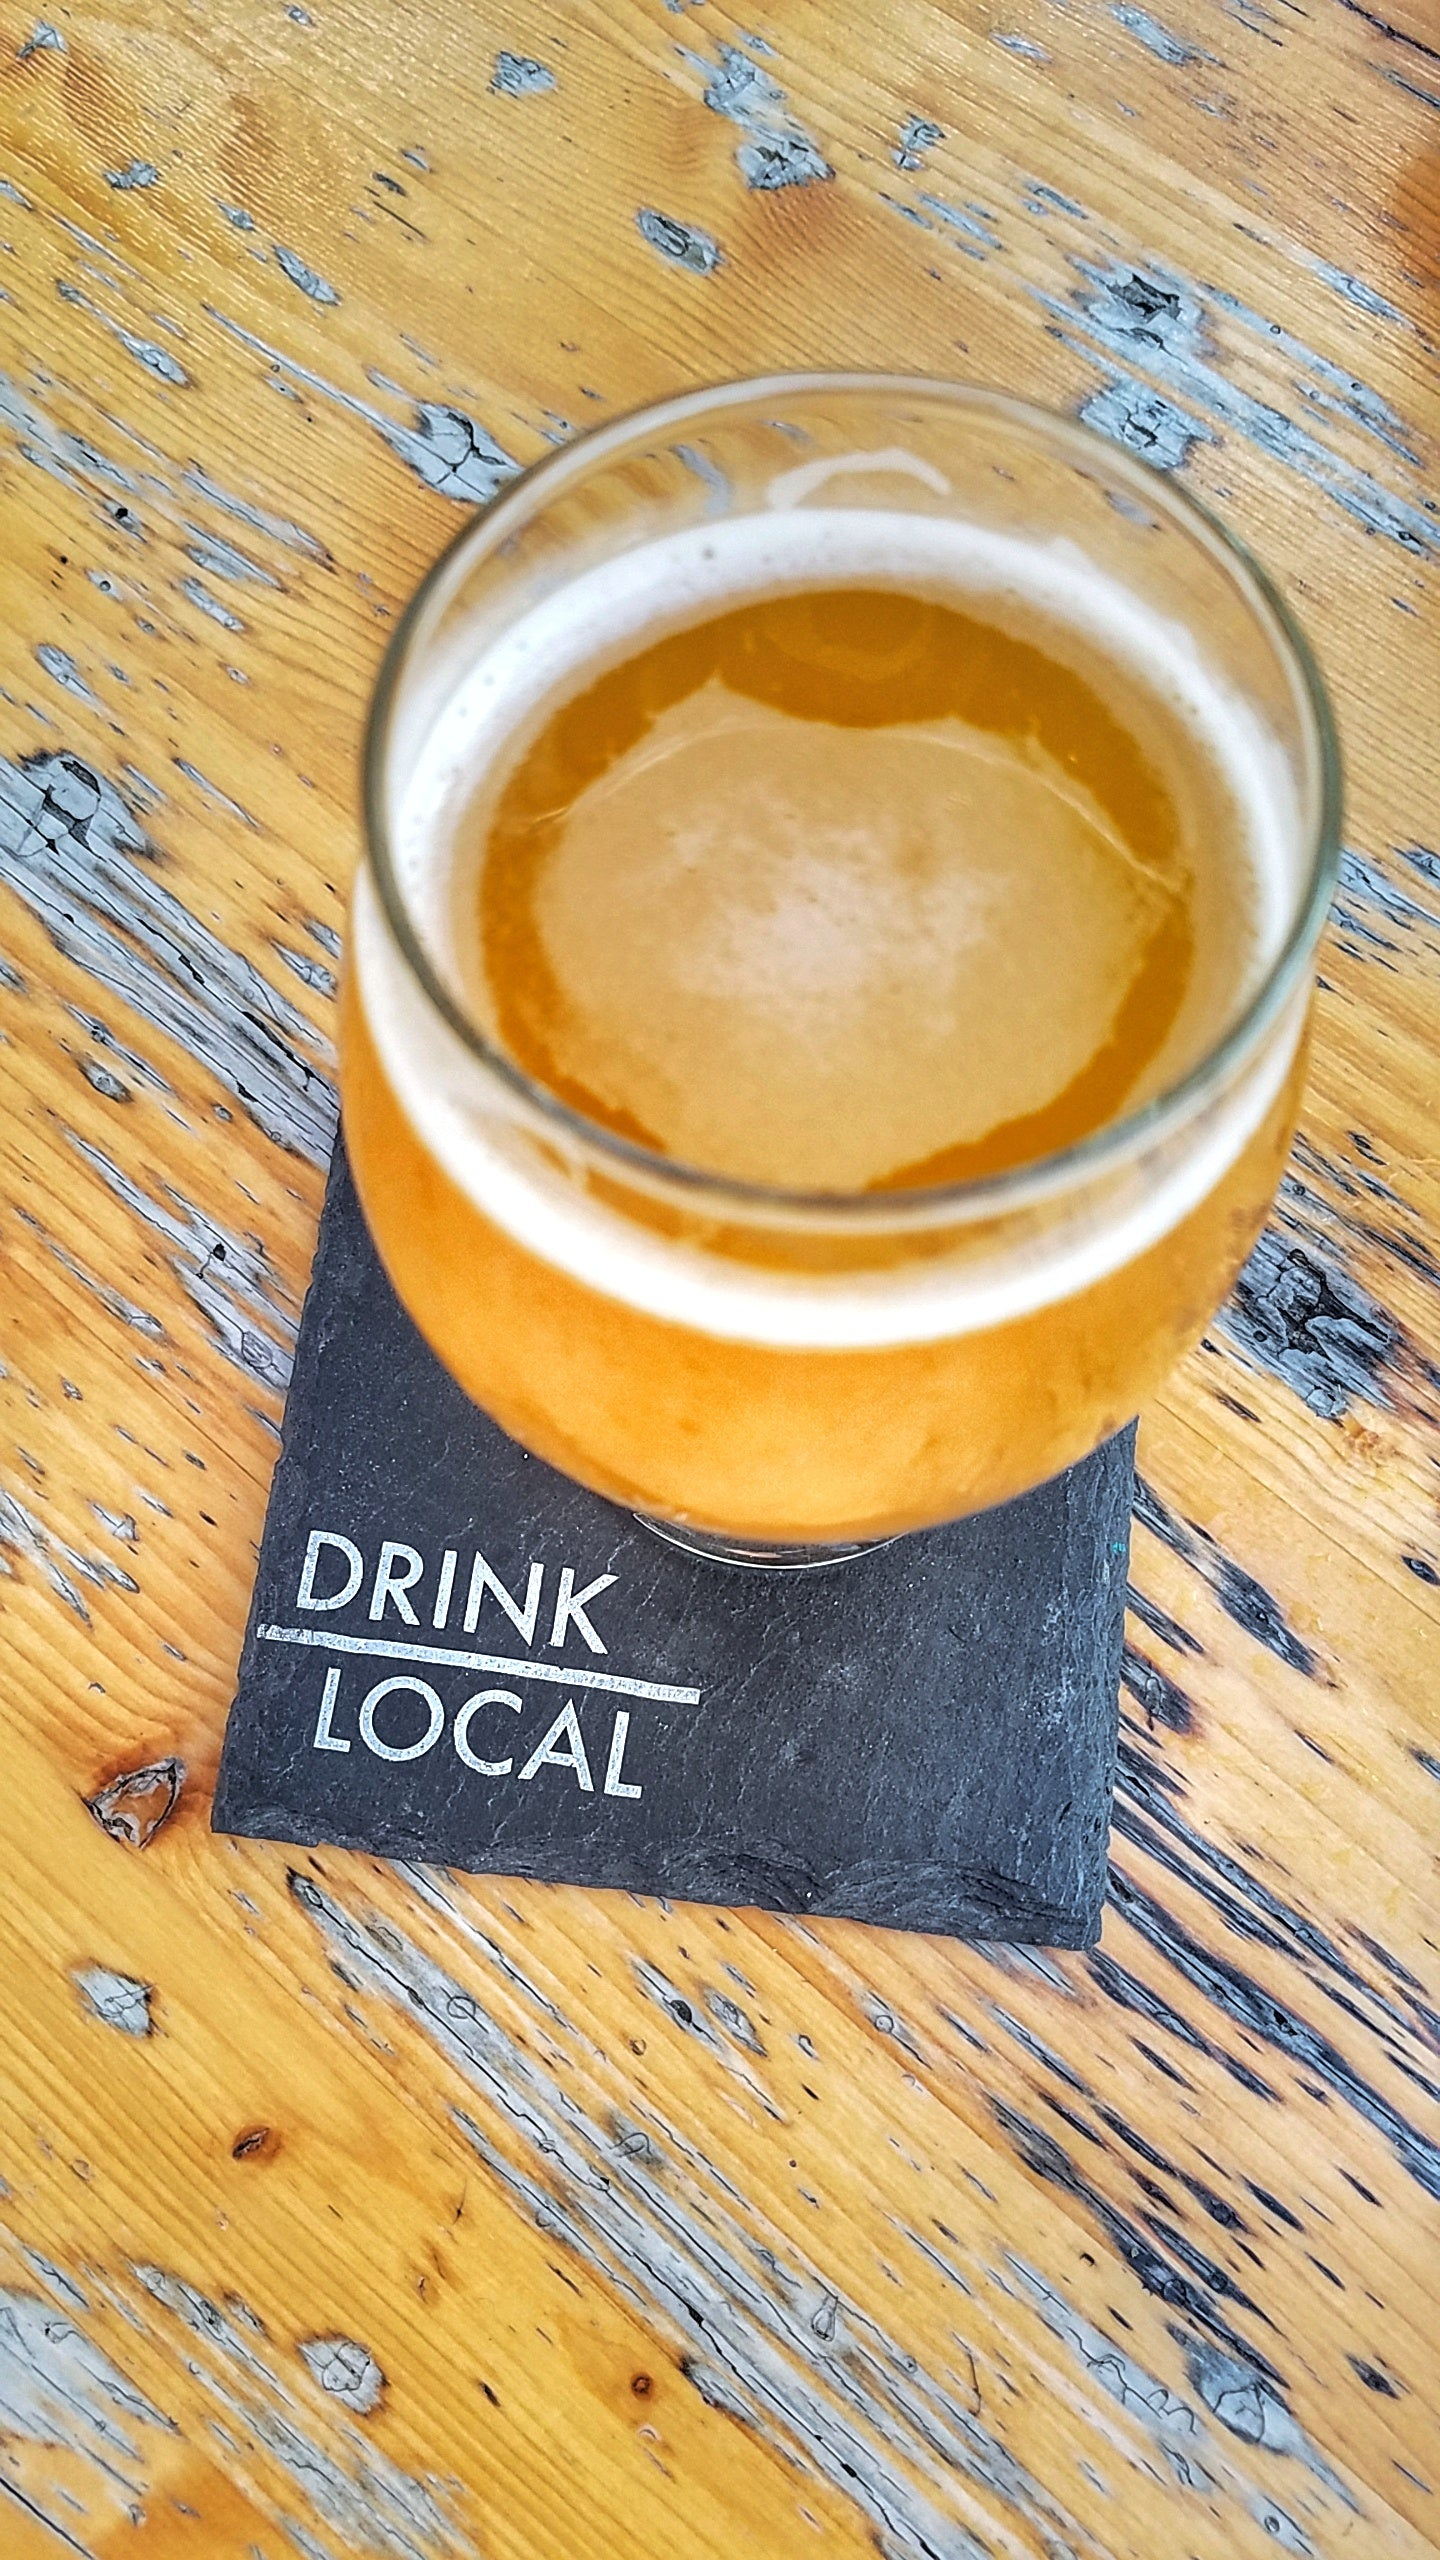 Drink Local Slate Coaster